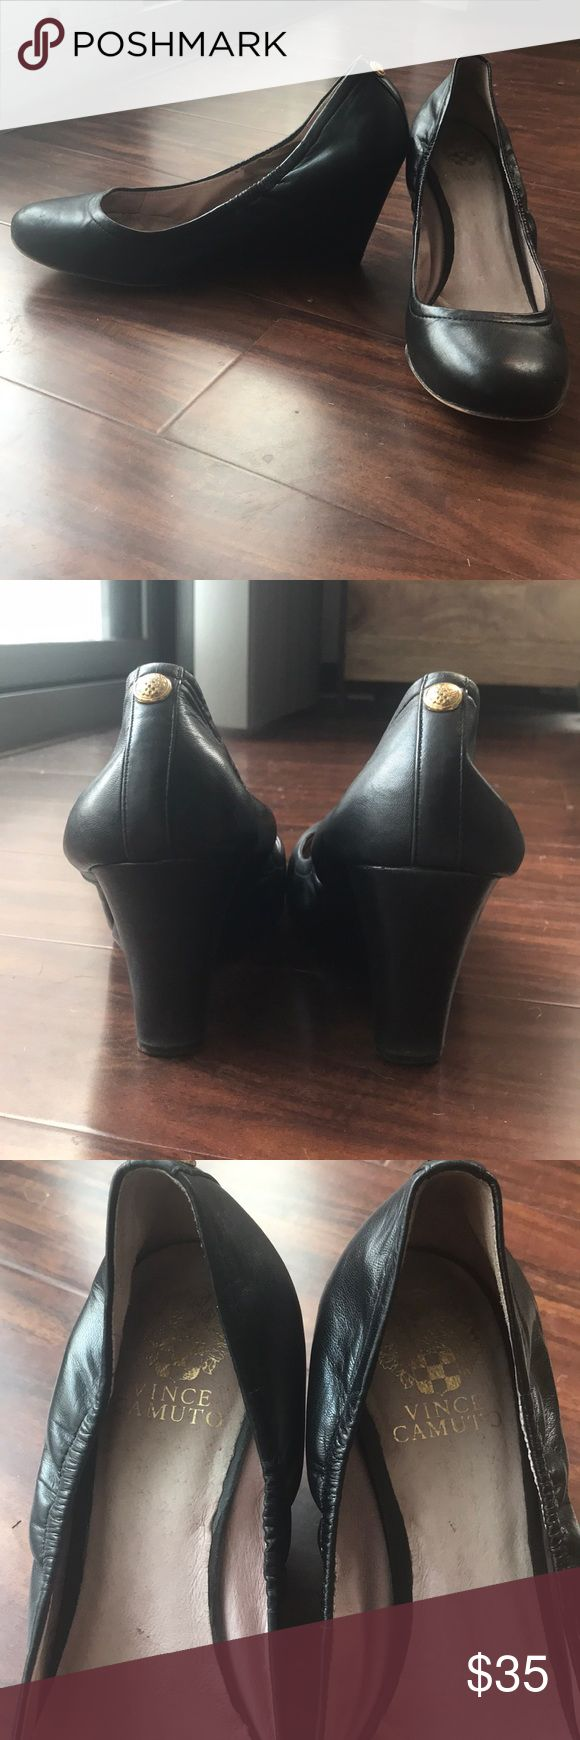 Vince Camino Black Wedge Pump Gorgeous genuine leather black wedge pumps from Vince Camuto!! Super comfy and perfect for work or play! Vince Camuto Shoes Heels